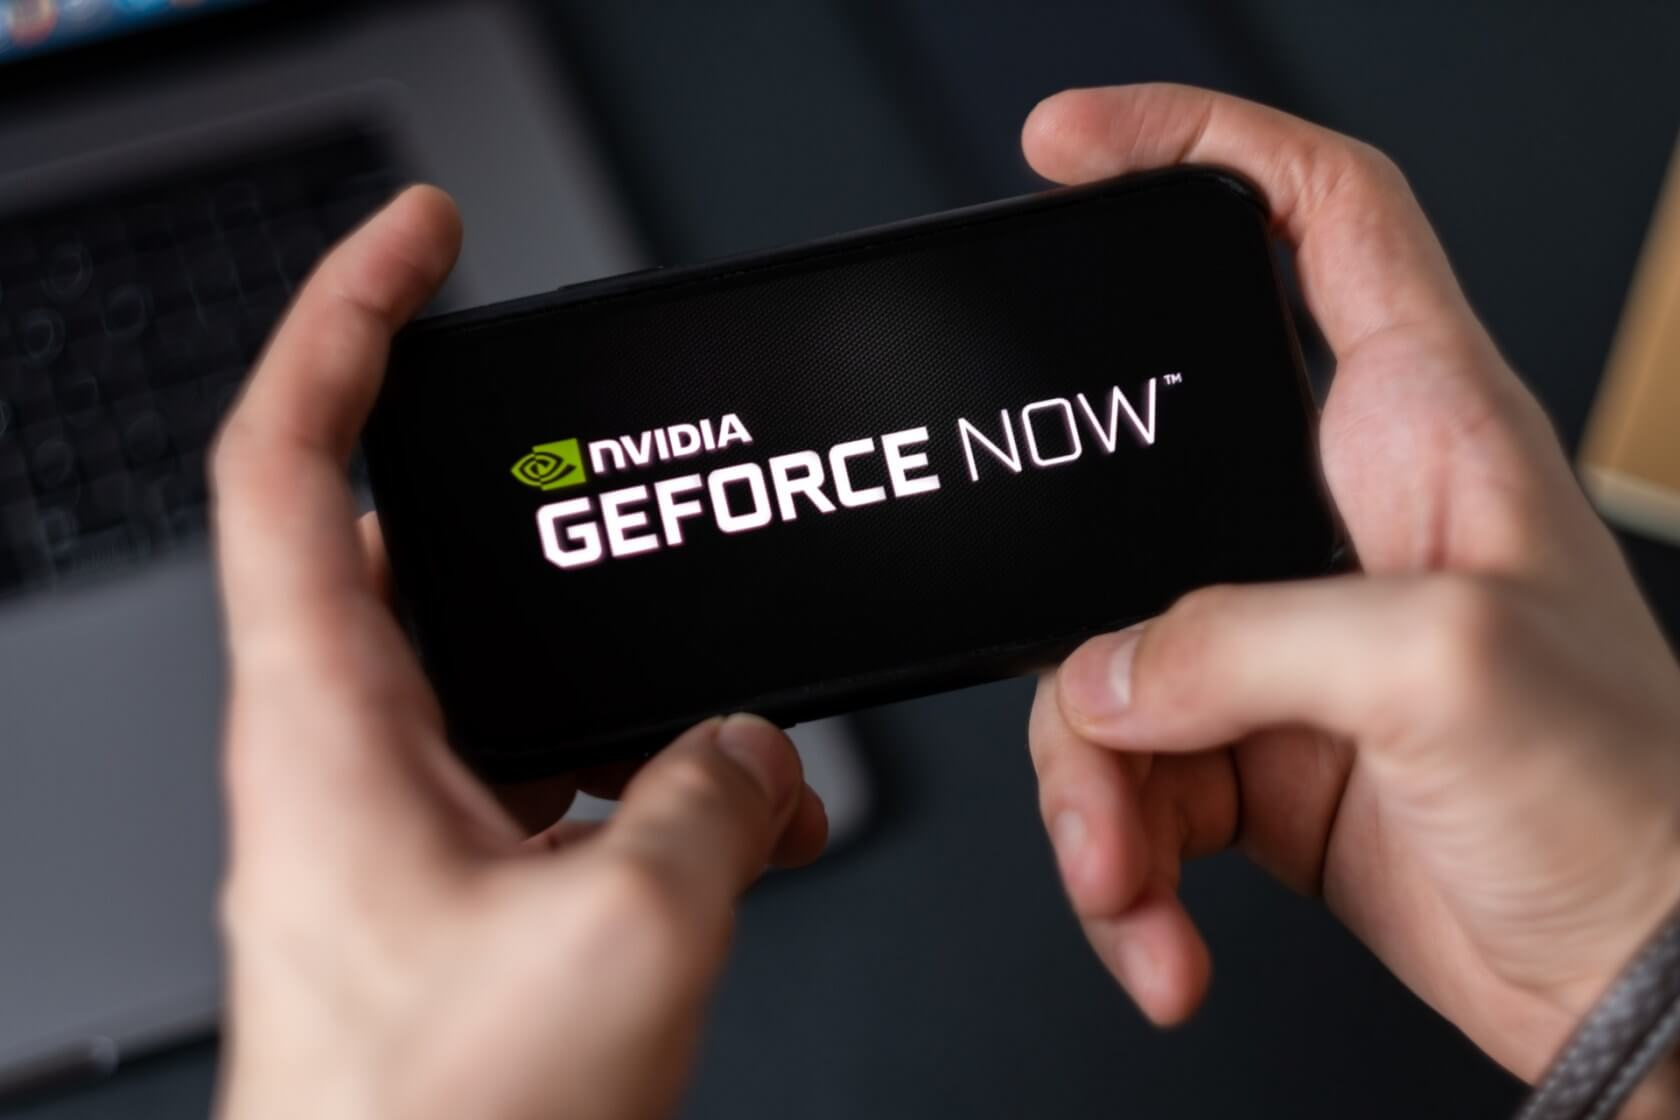 Nvidia introduces 'opt-in' policy for GeForce Now to prevent game removals